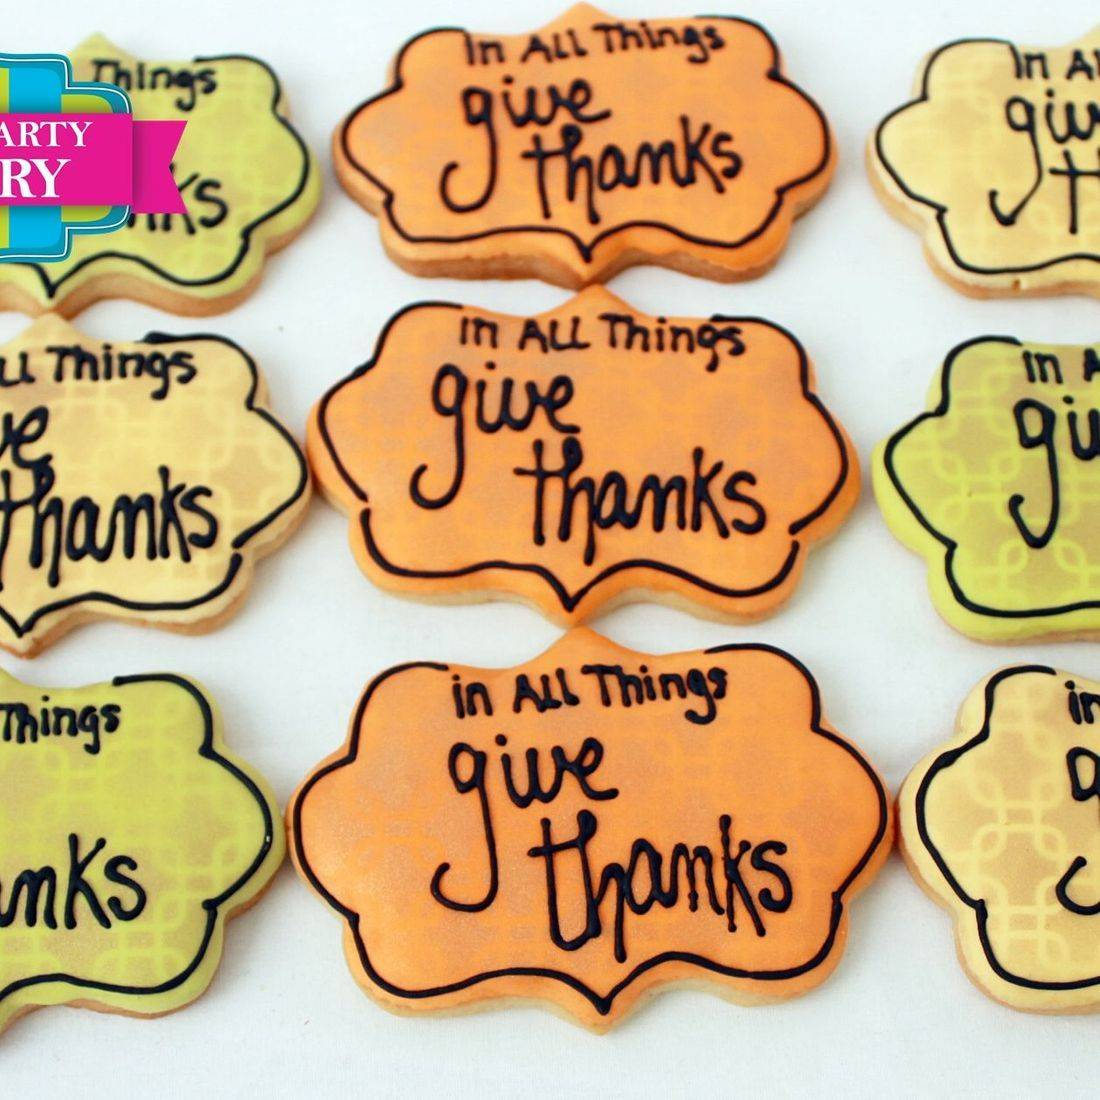 Give Thanks Cookies Milwaukee